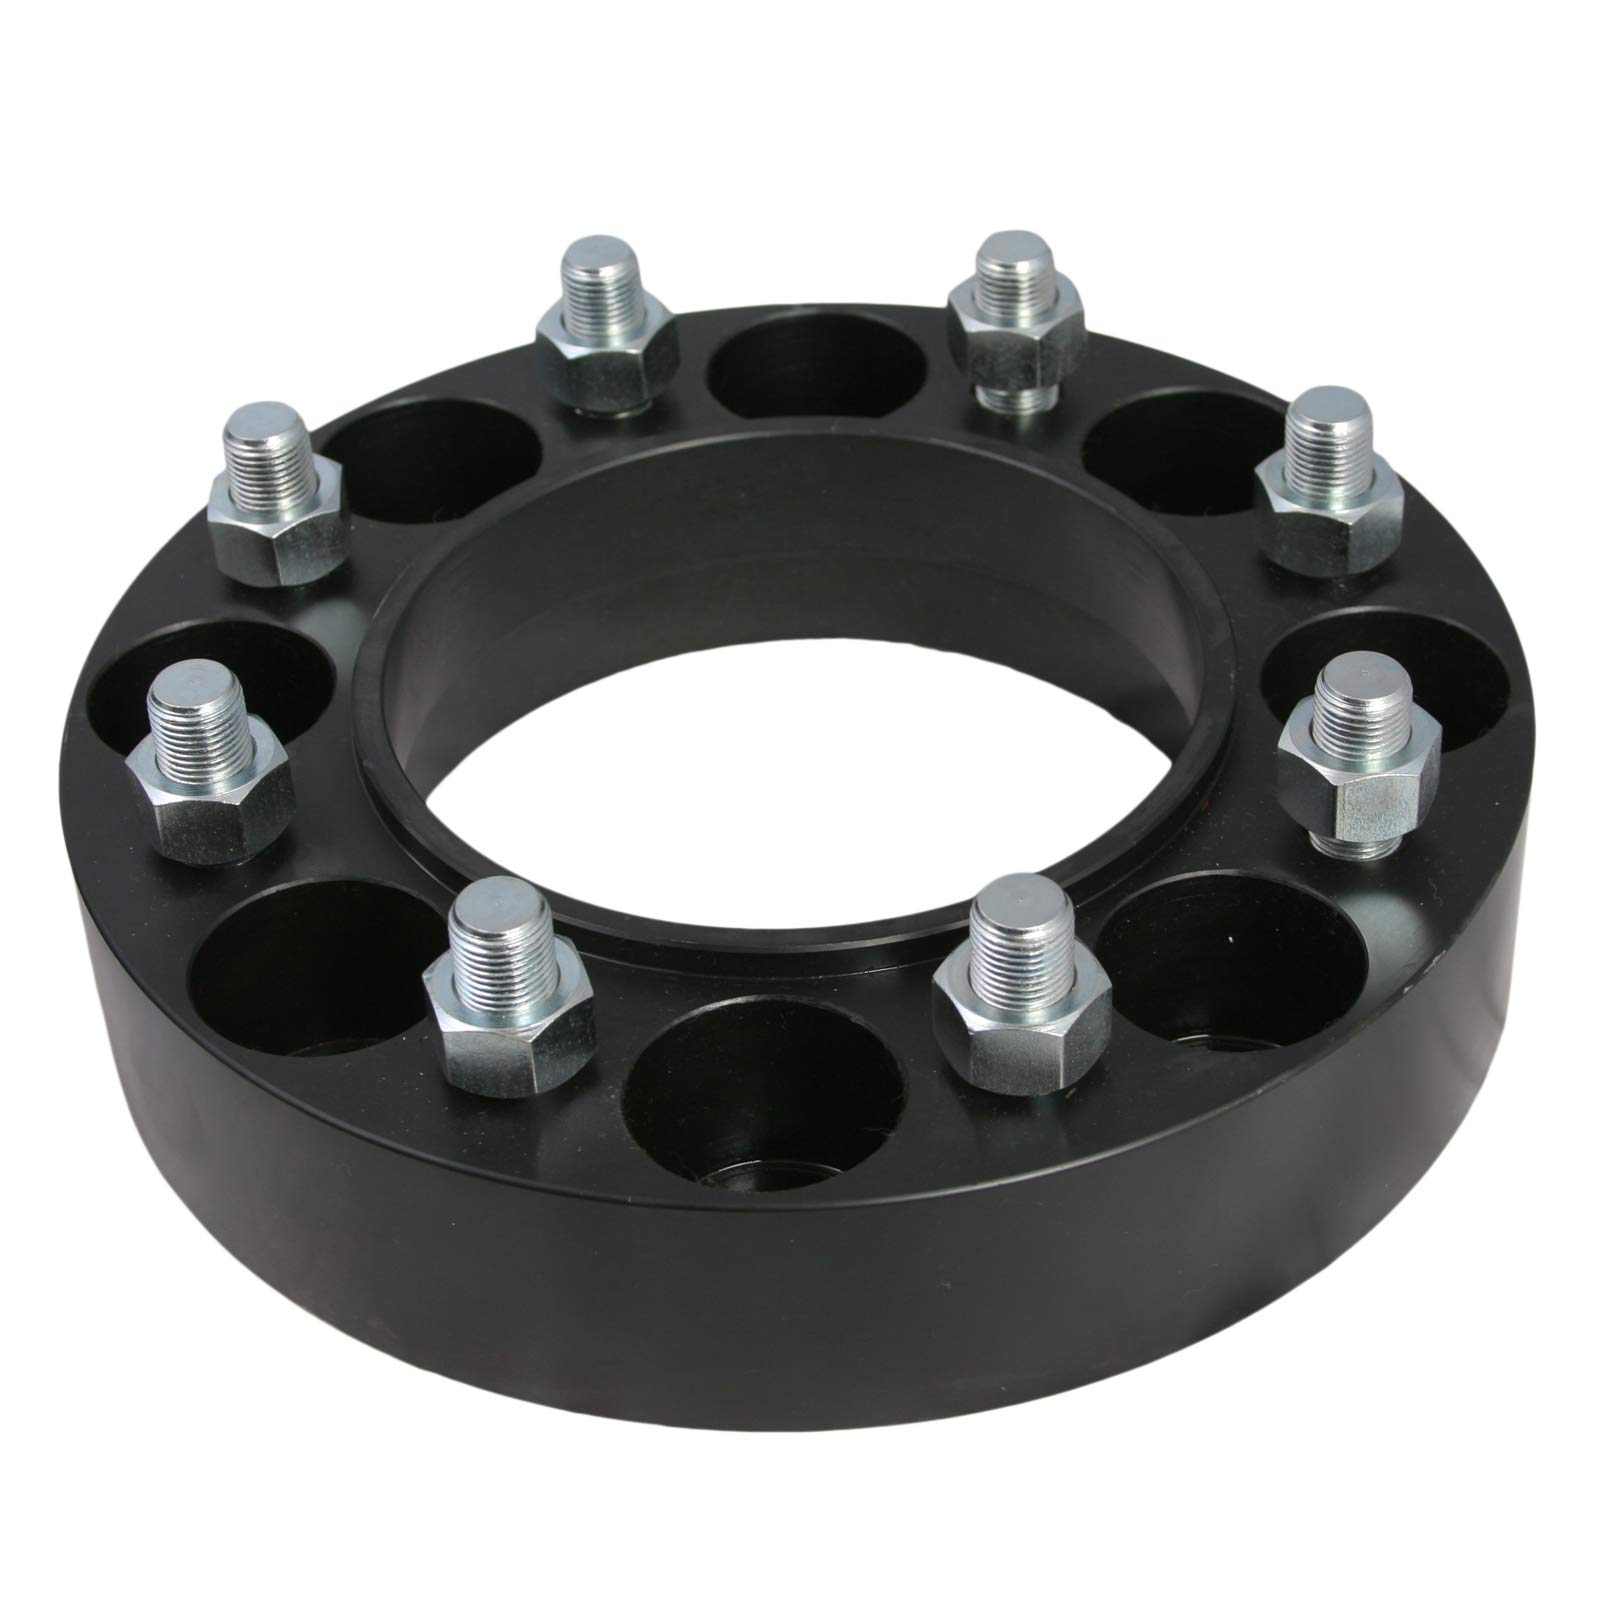 for Gehl Mustang New Holland Bobcat Case John Deere Cat Terex RockTrix 4pcs 2 inch Skid Steer 6Lug Wheel Spacers Adapters 6x6 Bolt Pattern 9//16x18 Studs Nuts